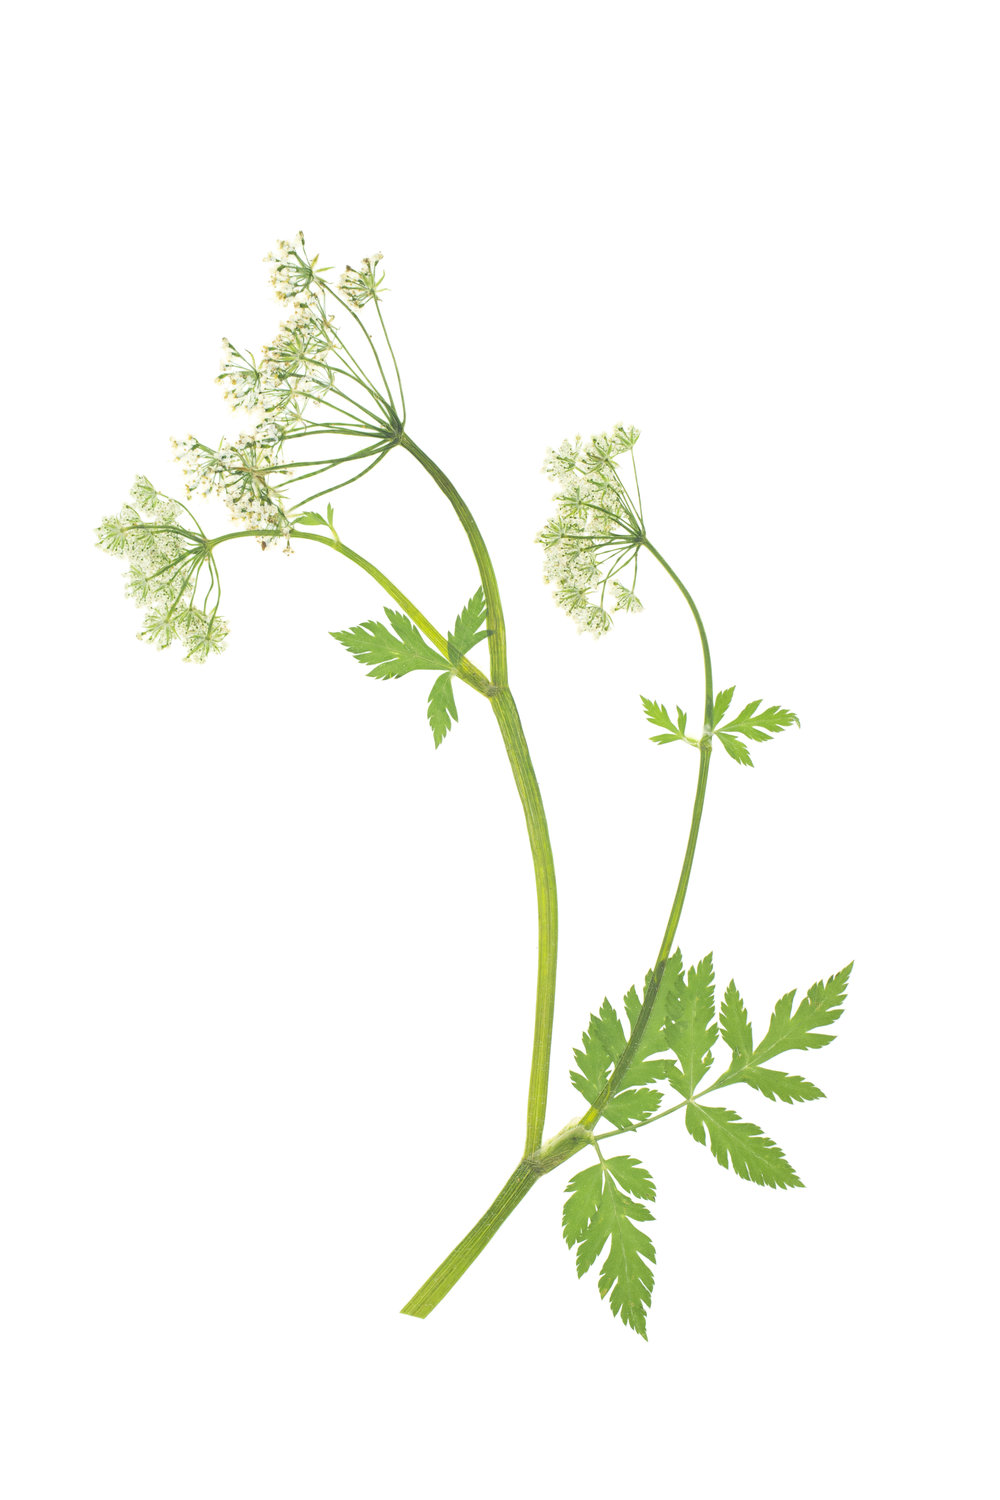 Anthriscus nitida / Glossy Chervil